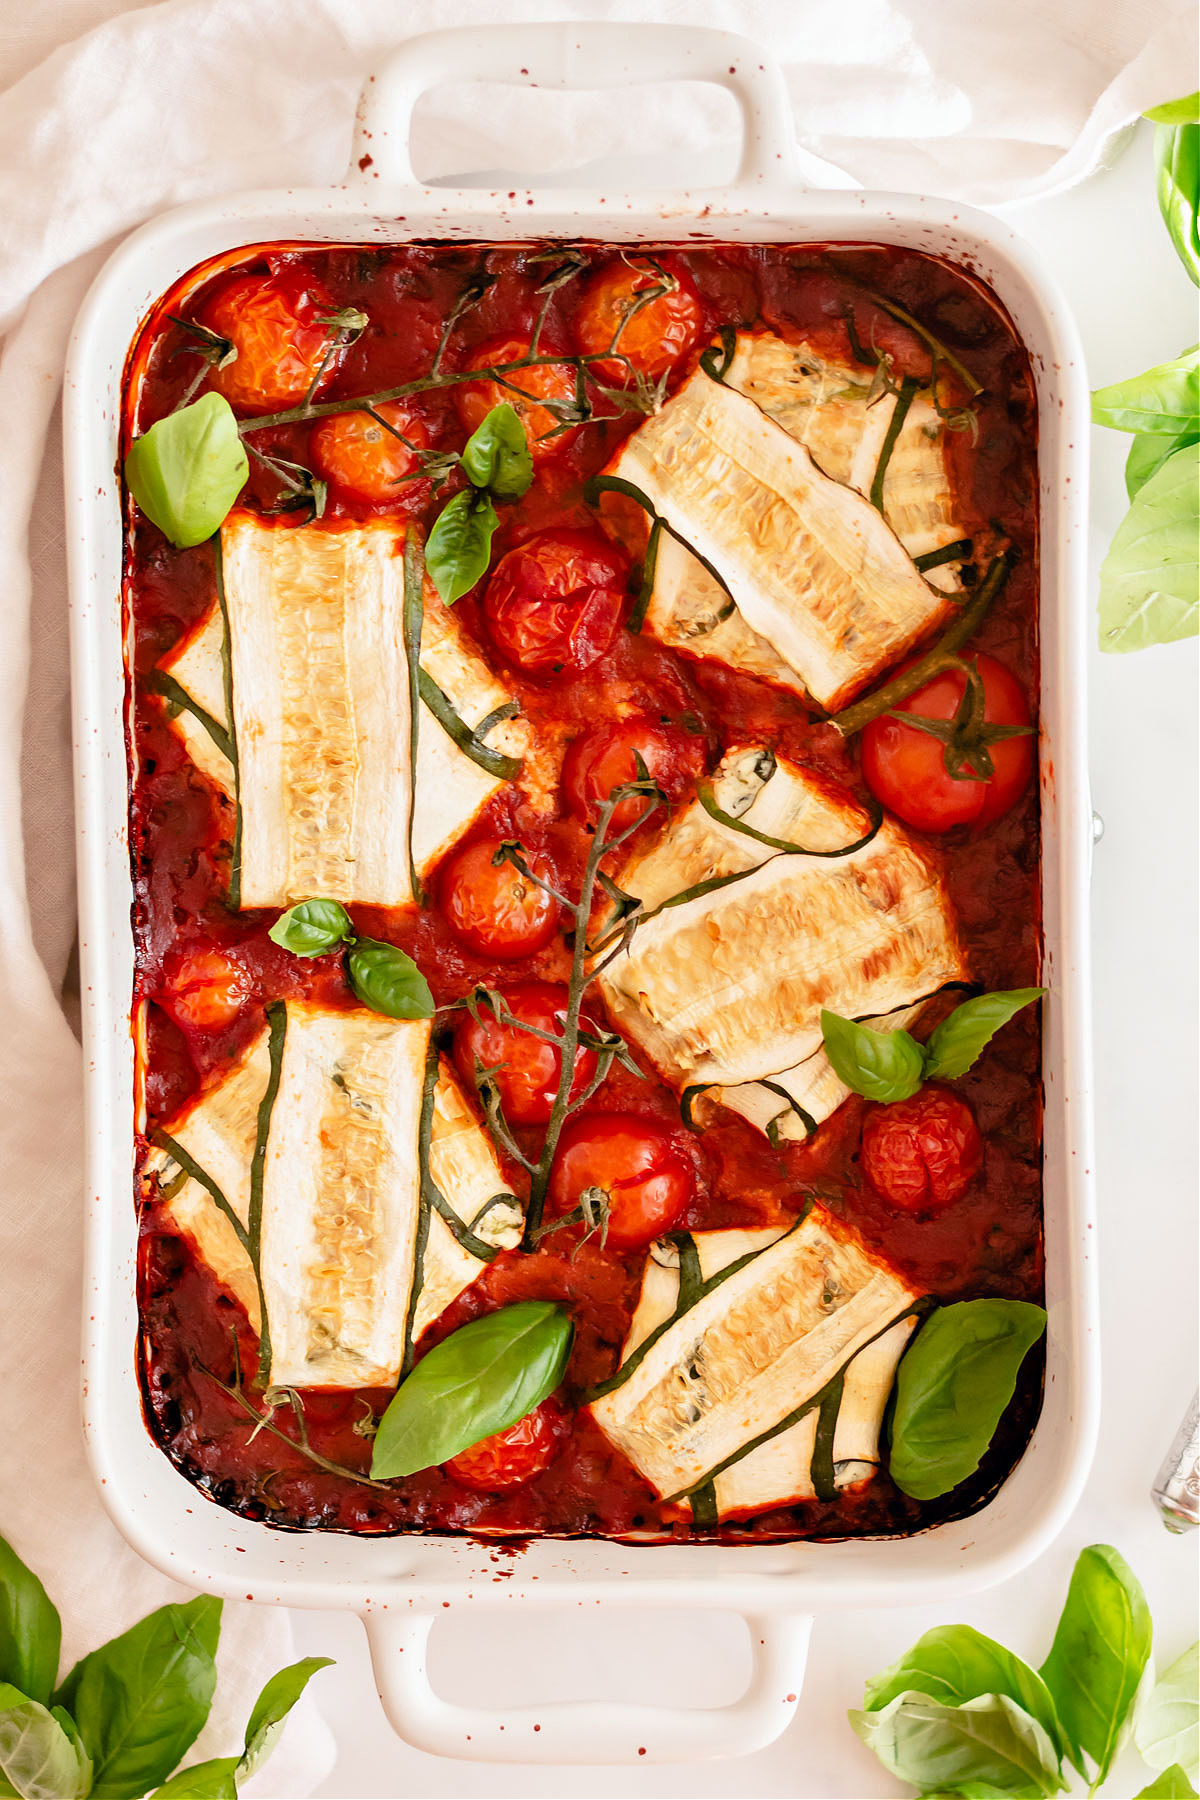 Zucchini rolled up with cheese and marinara sauce in white baking dish.